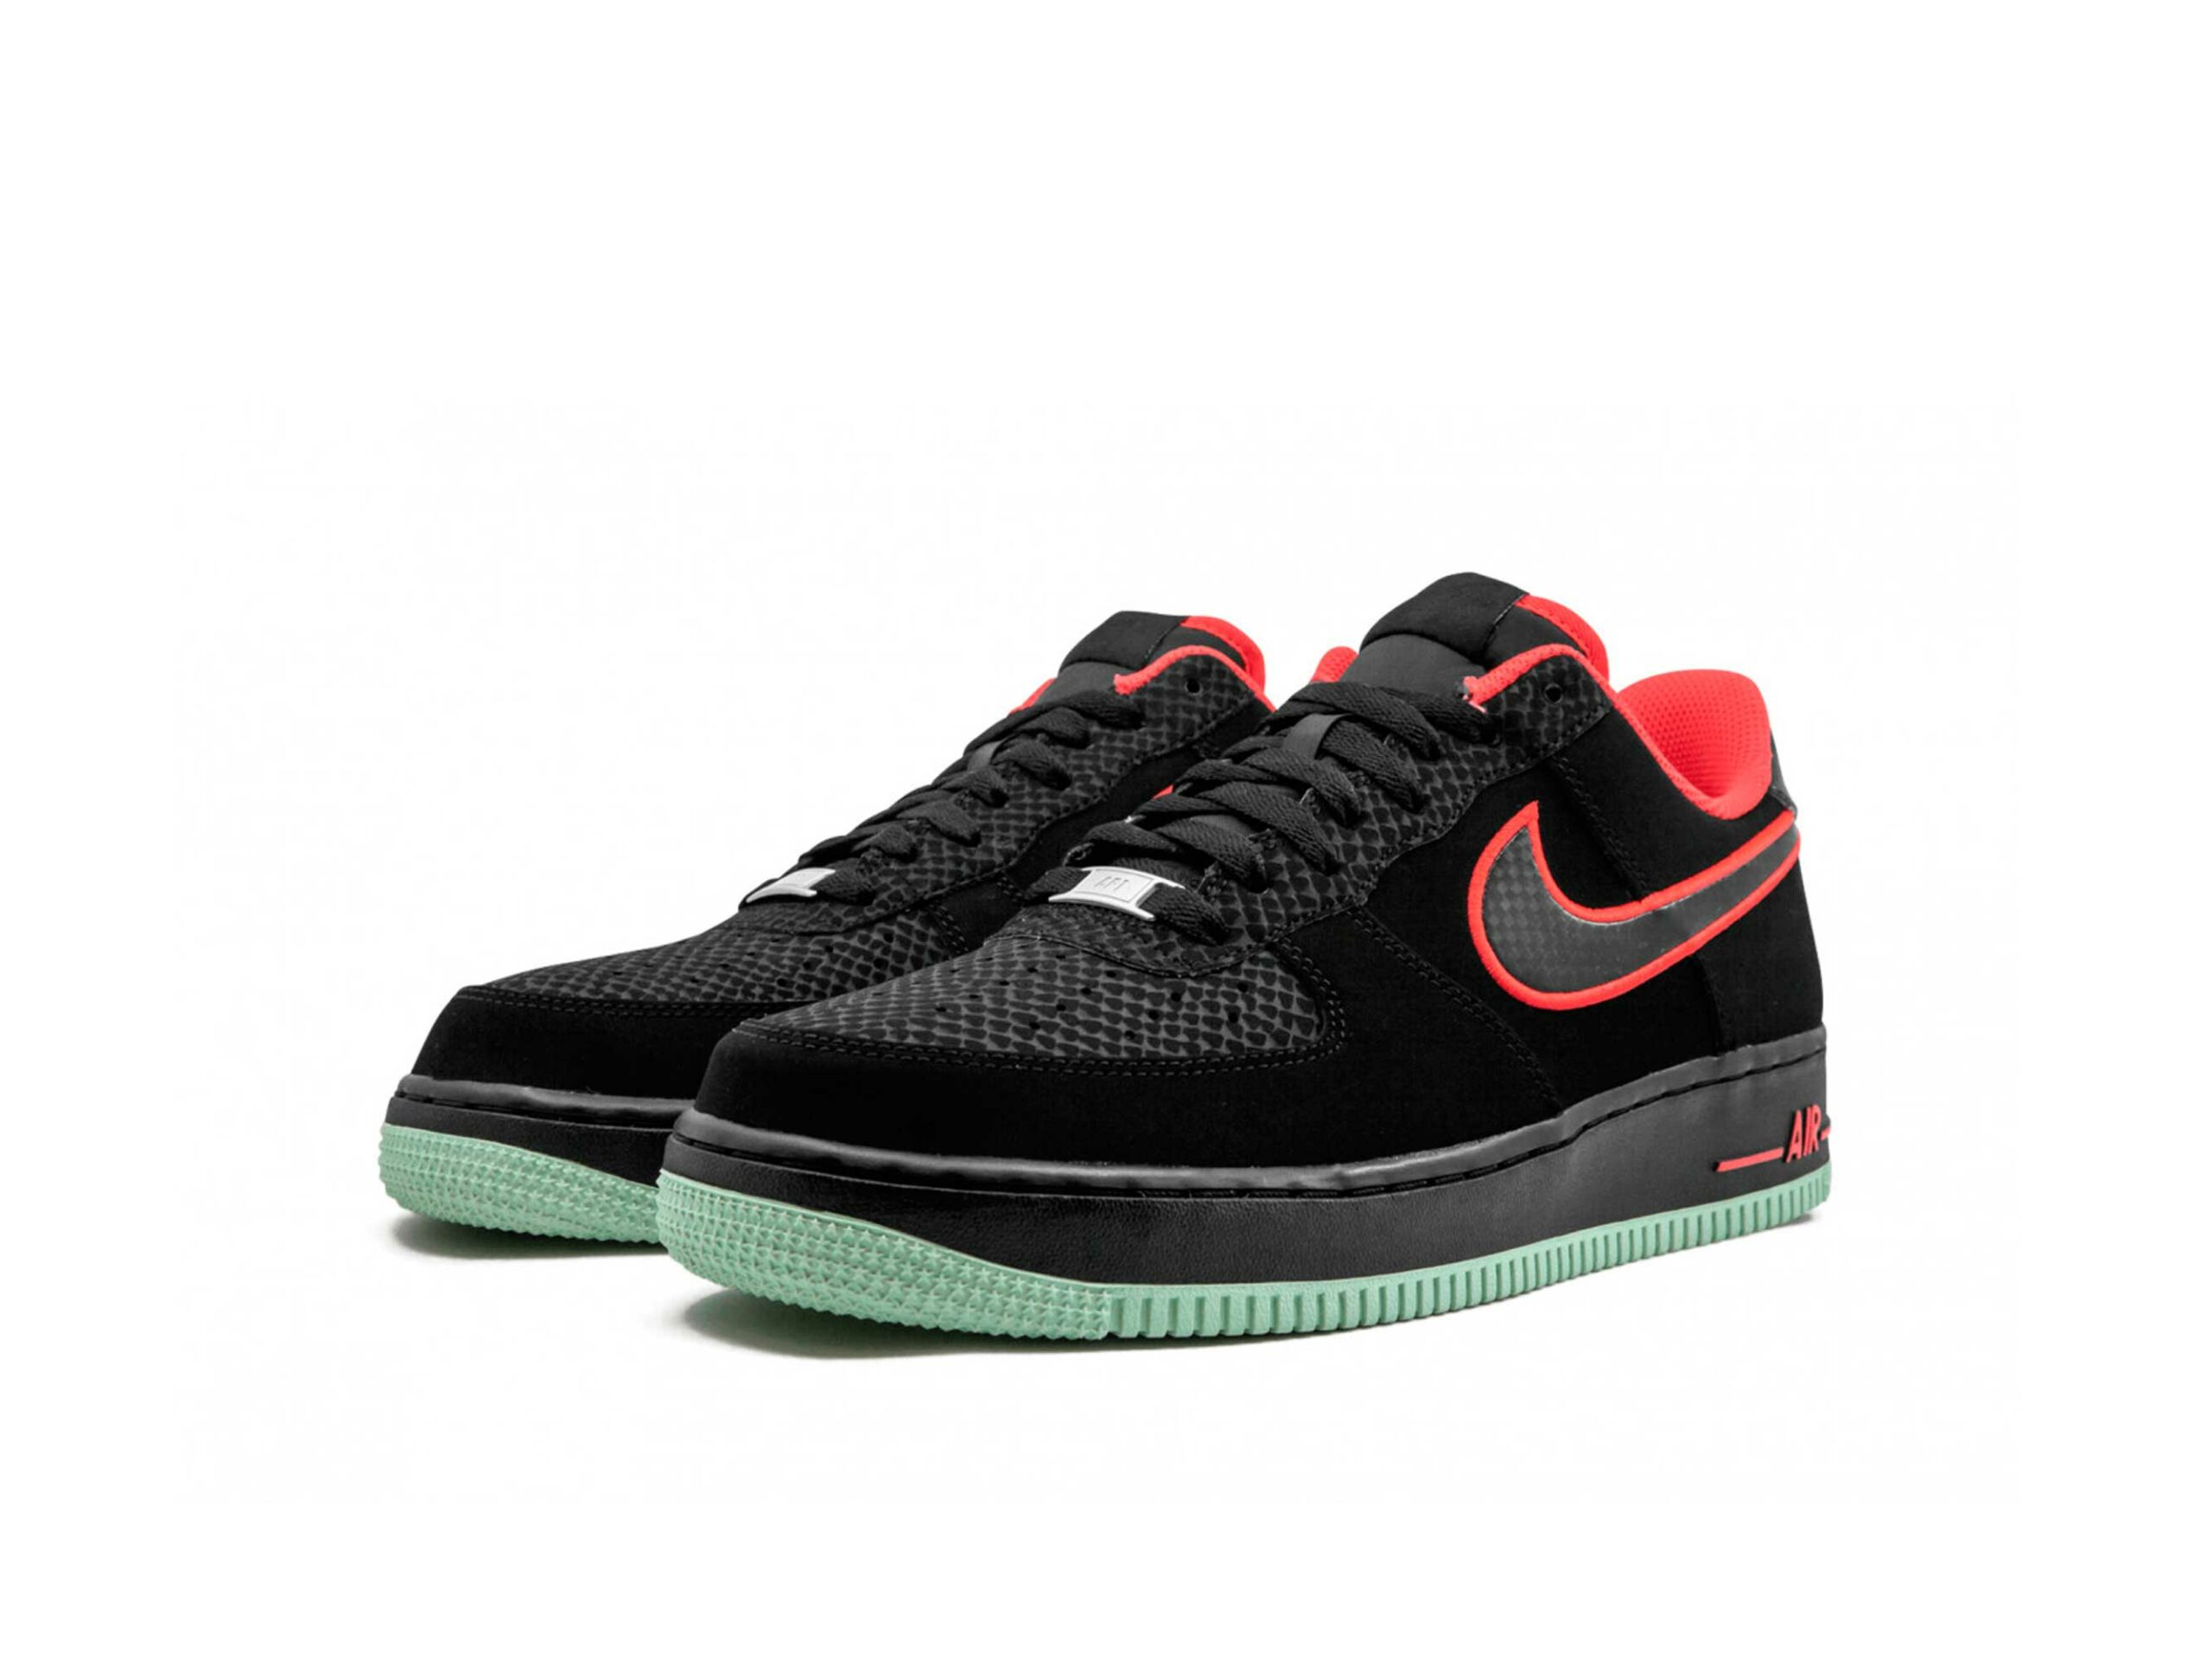 nike air force 1 black action red 488298_048 купить